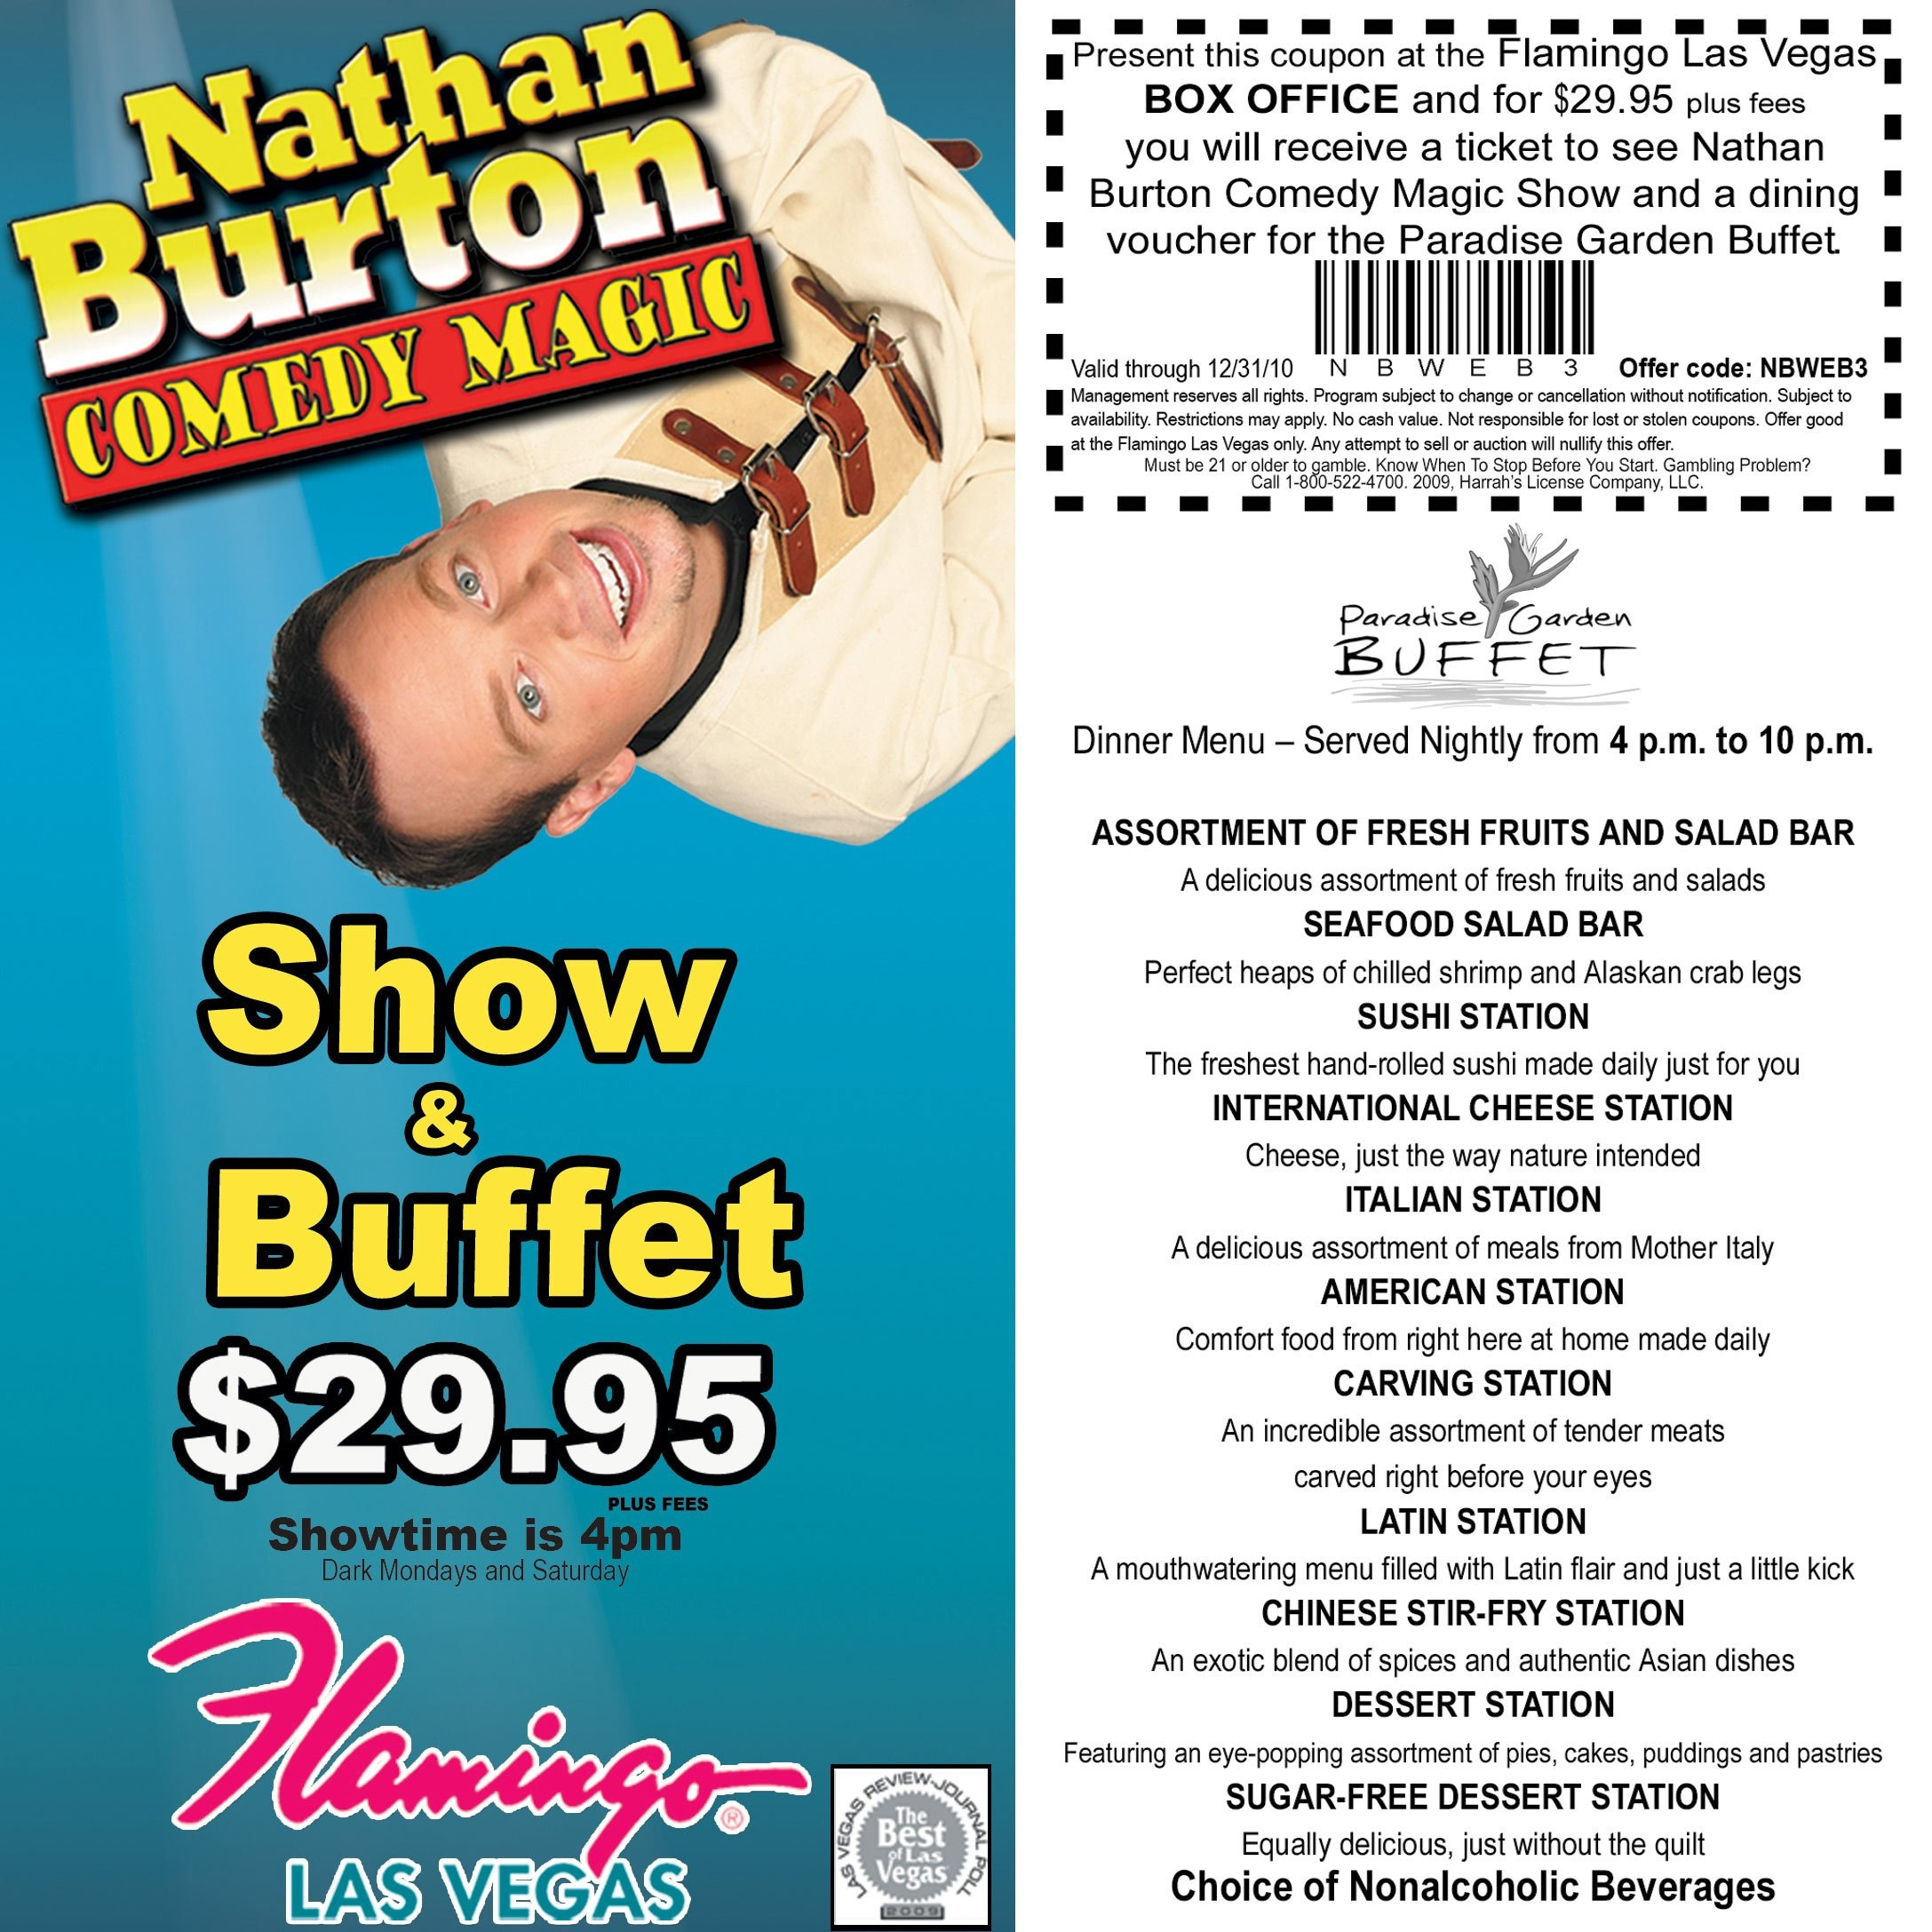 Jubilee Show Tickets 2 For 1 Las Vegas Coupon At Ballys Sweet - Free Printable Las Vegas Coupons 2014